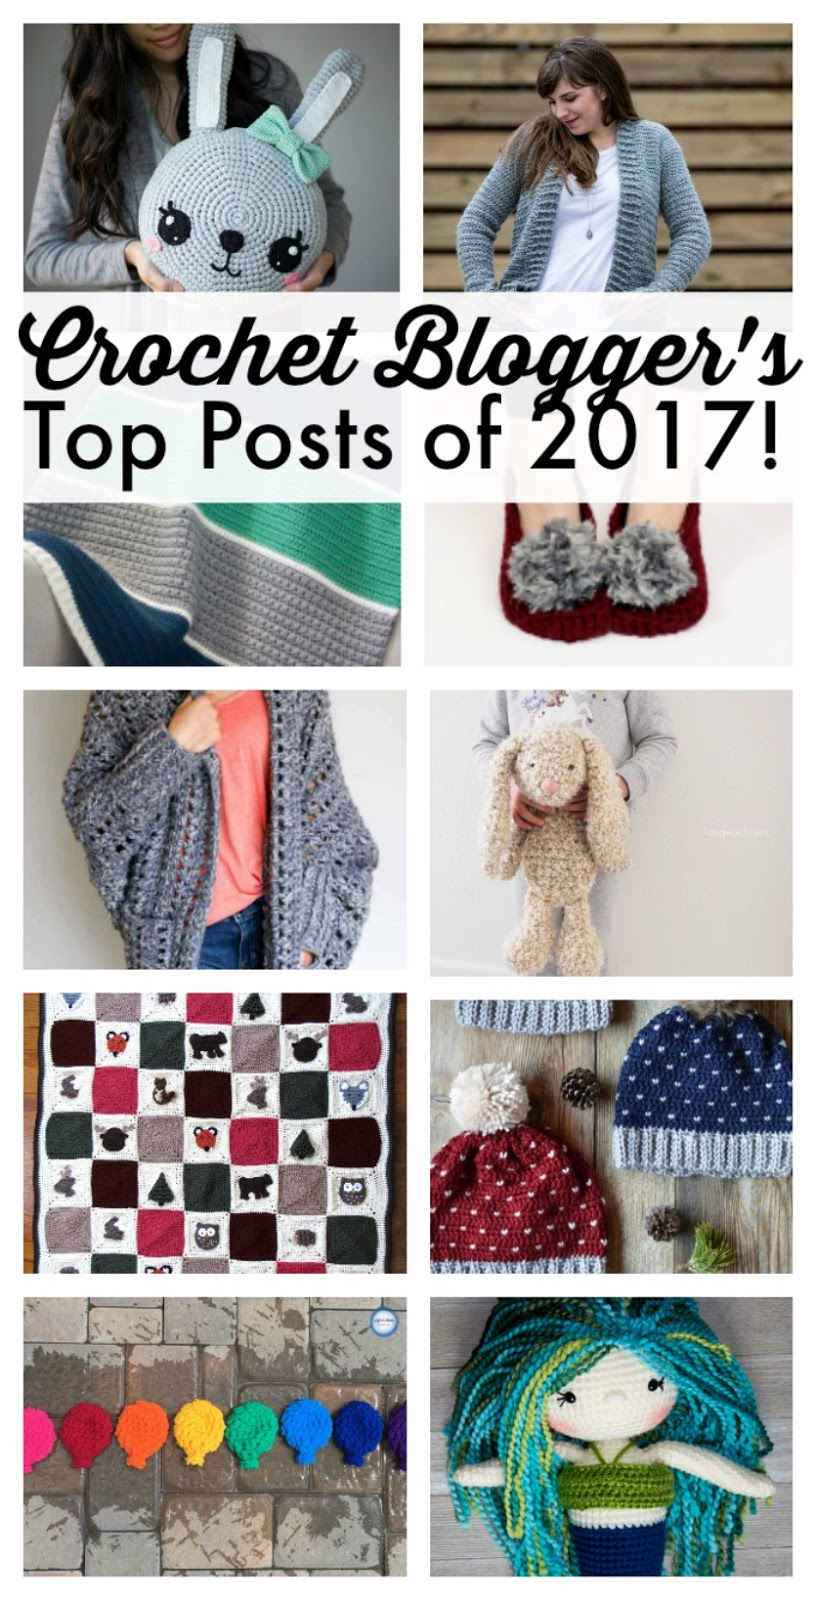 Crochet bloggers top free crochet patterns of 2017 marias blue crochet bloggers top free crochet patterns of 2017 bankloansurffo Choice Image